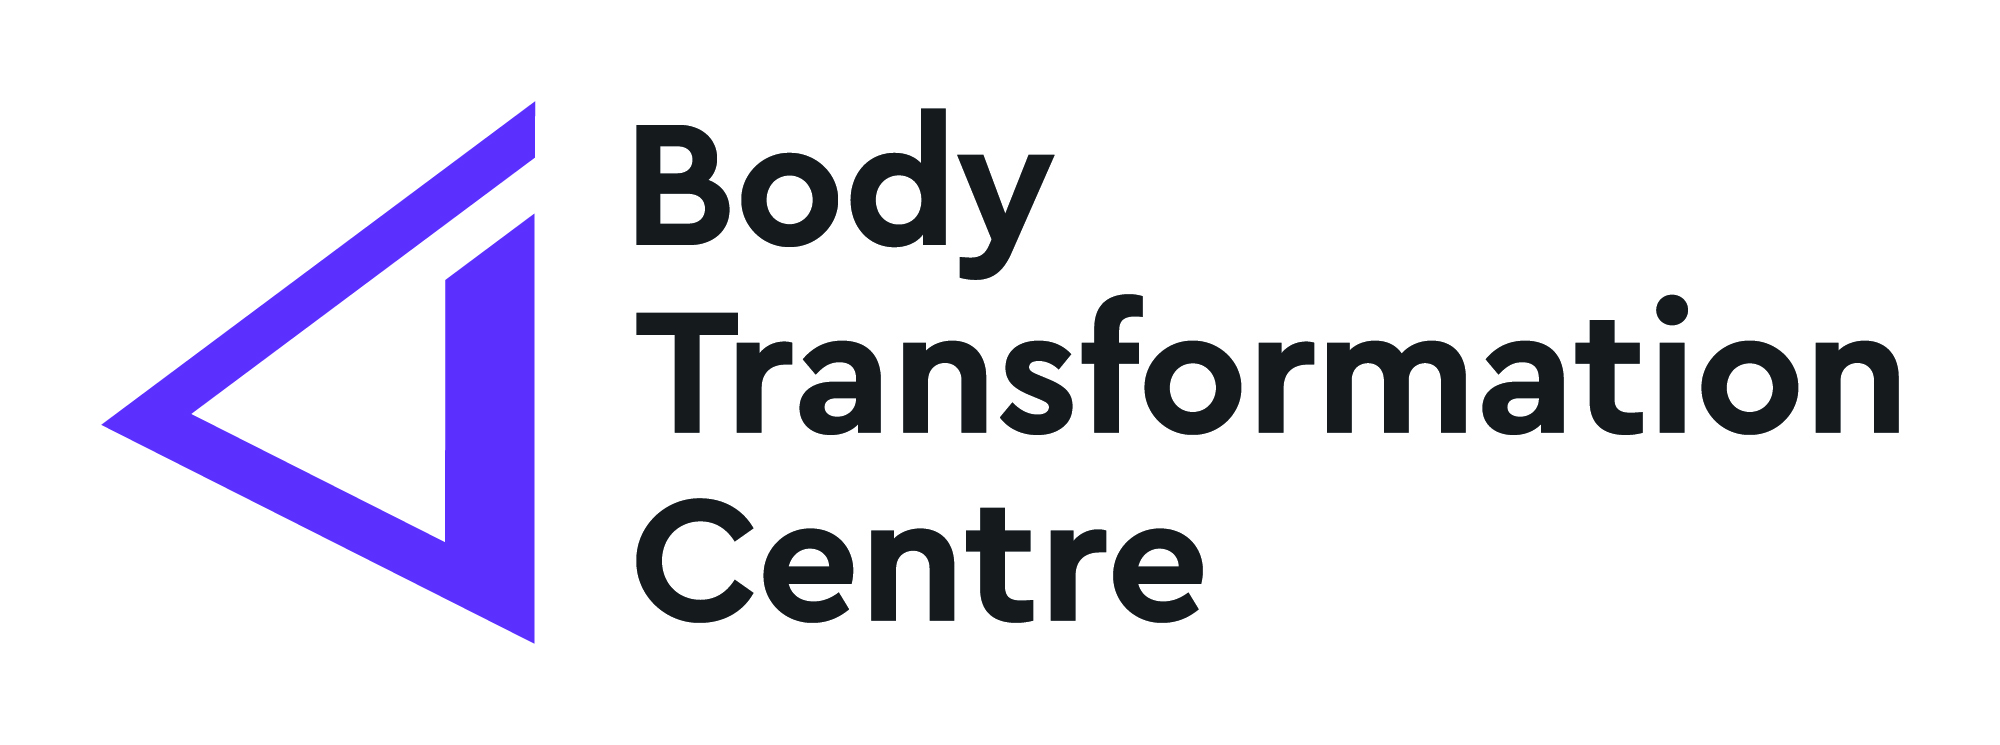 Body Transformation Centre - Personal Trainers Loughborough UK